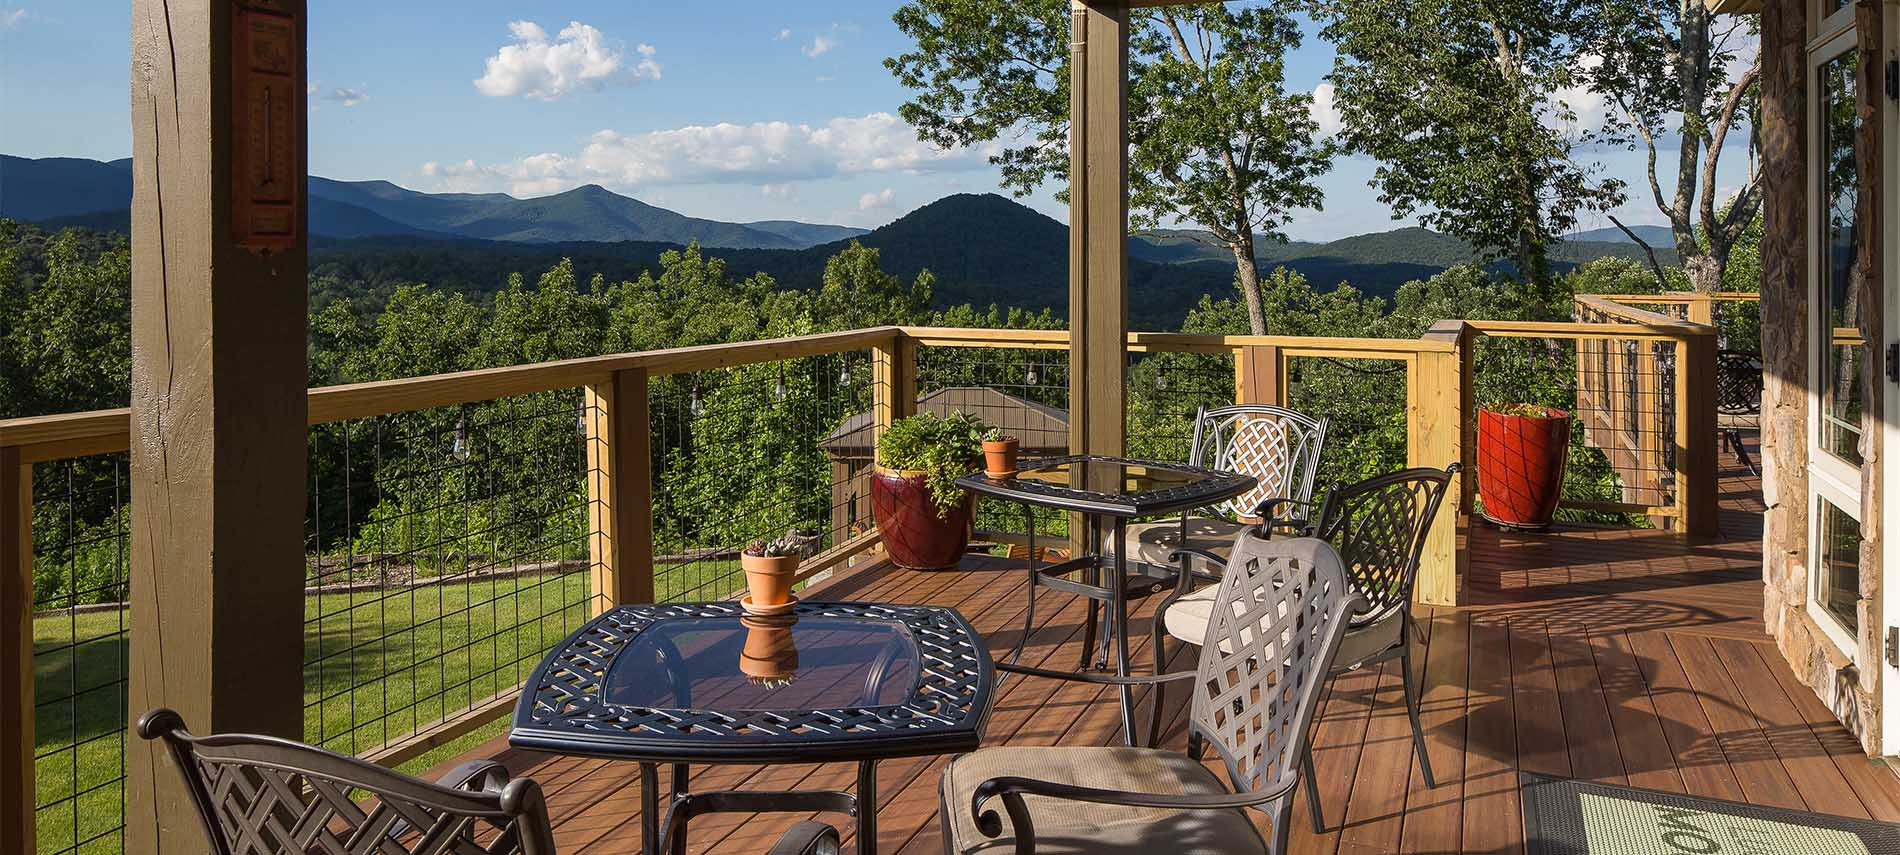 Outdoor patio with reflective dining tables, overlooking a scenic mountain view with sparse clouds dotting the sky.